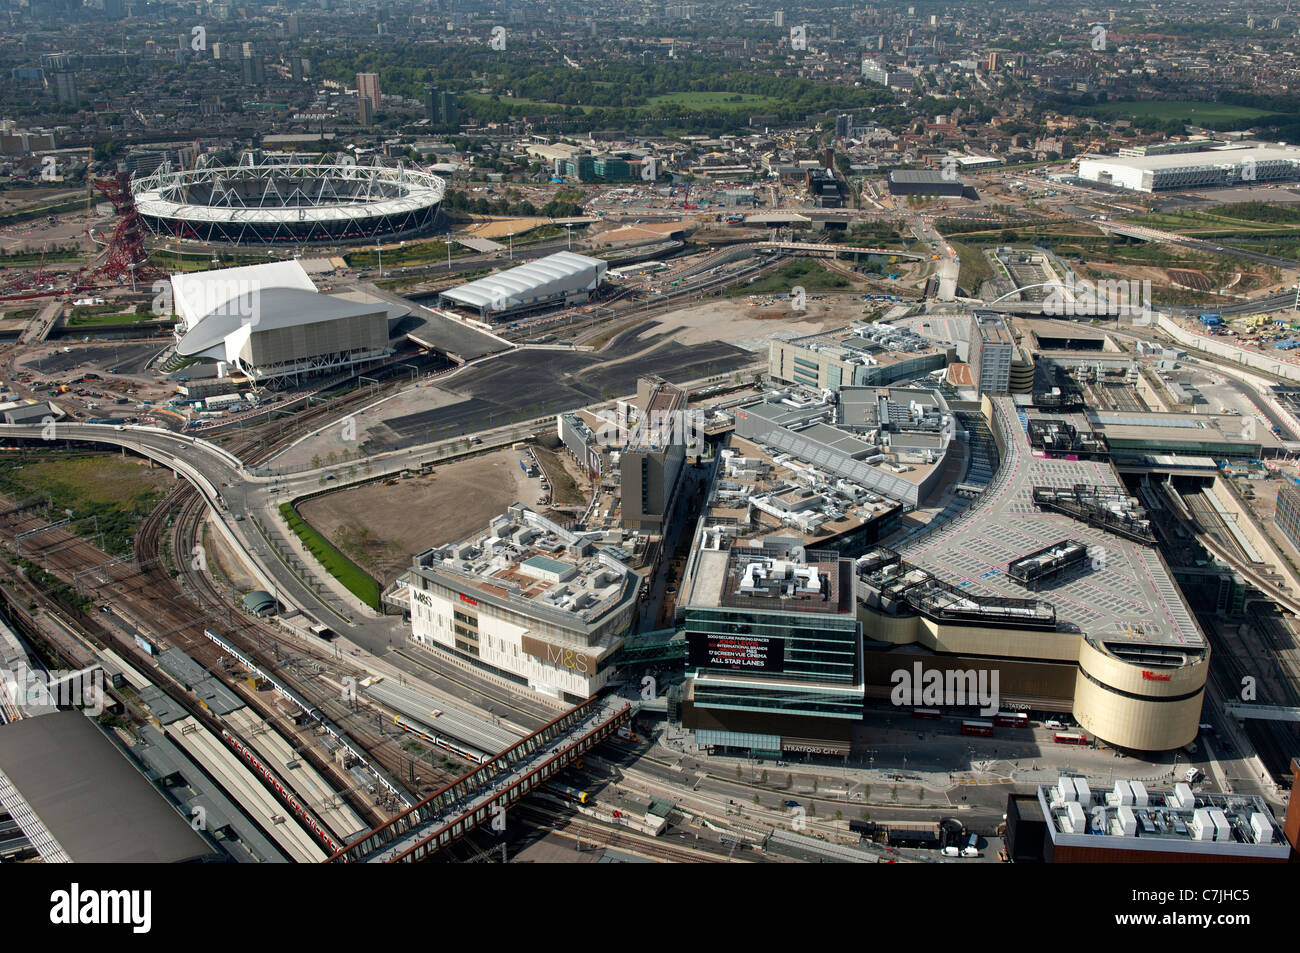 The Westfield Shopping Centre at the Olympic Park London from the air. - Stock Image